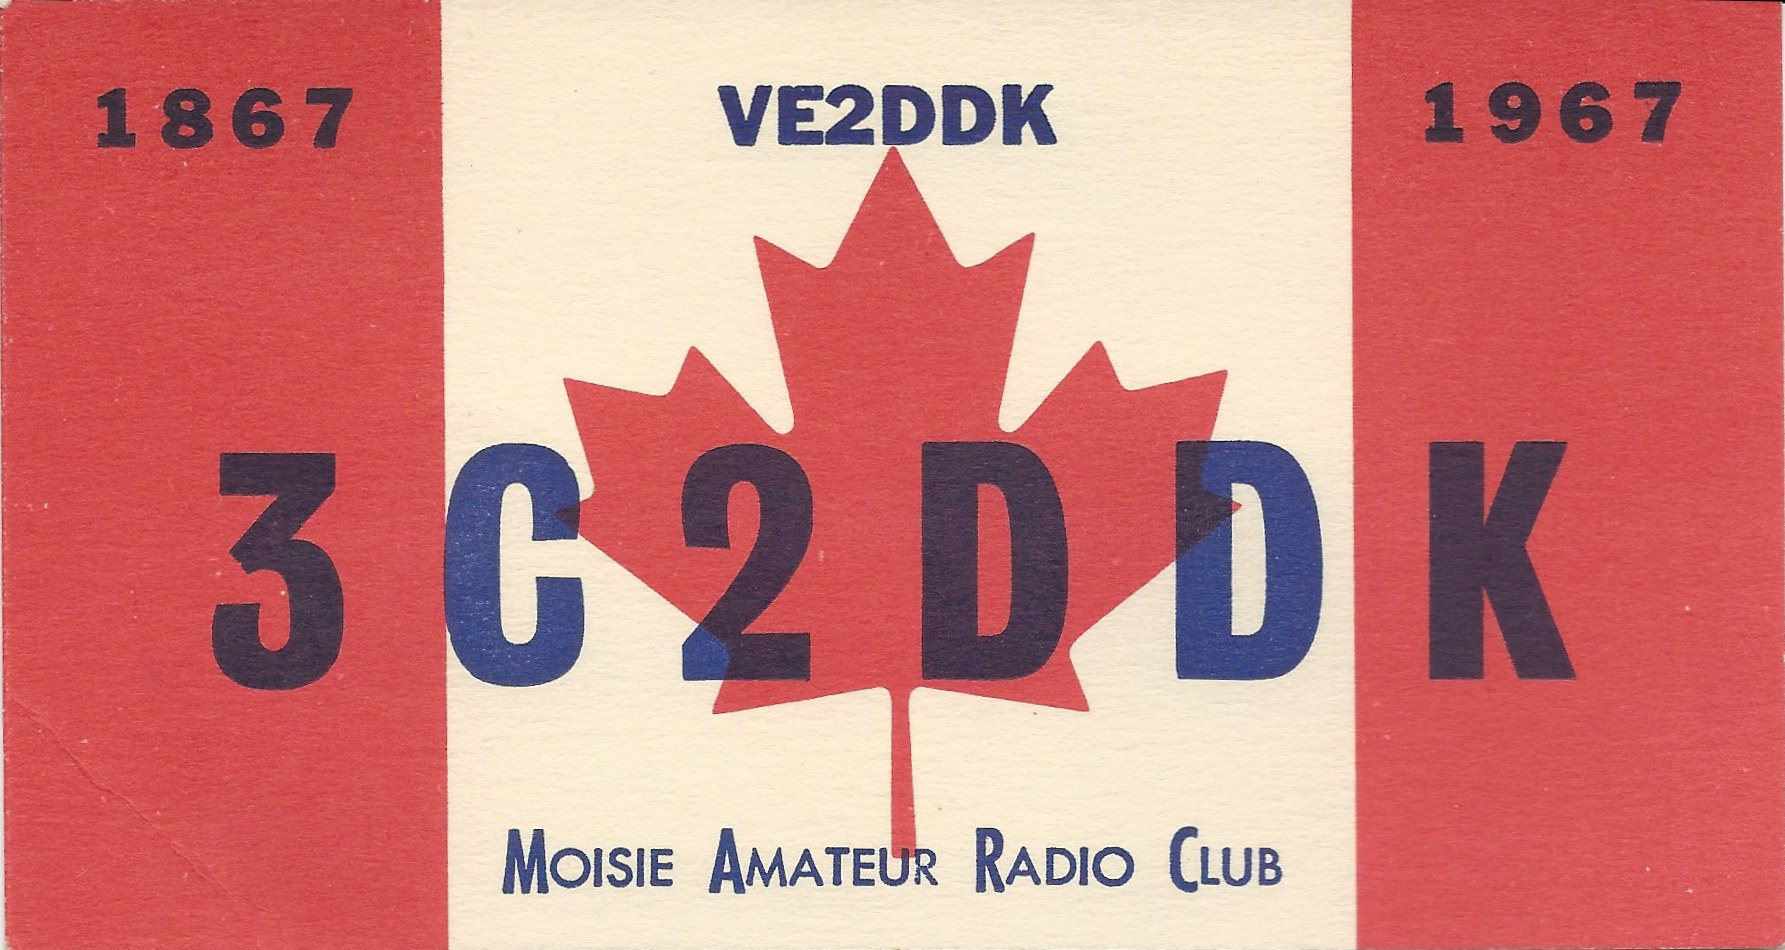 Postcard Call Sign for Amateur Radio Club at RCAF Moisie Sent to Contacted Party